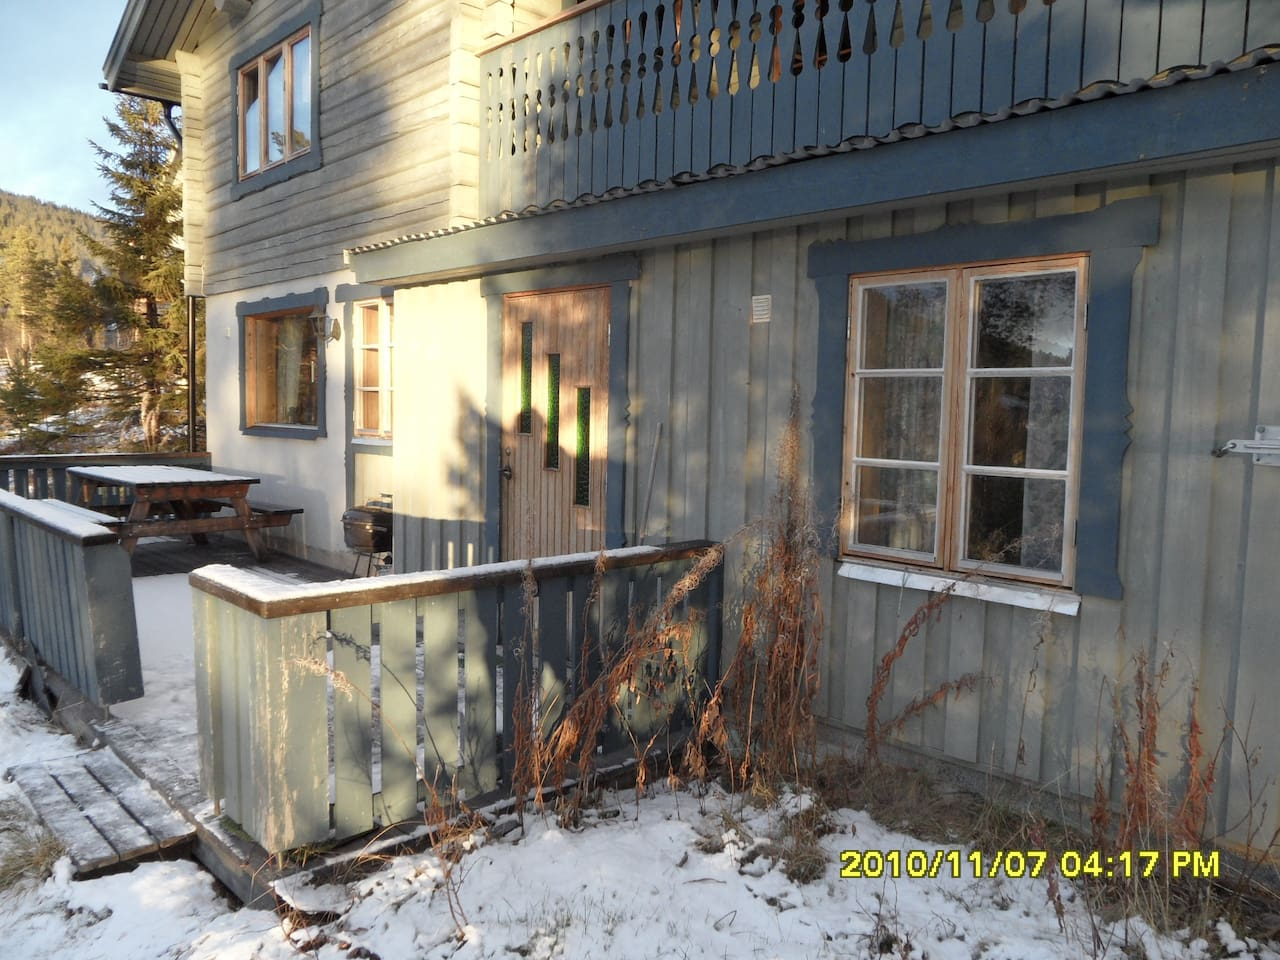 Entrance to the cabin. OBS the veranda is removed due renovation